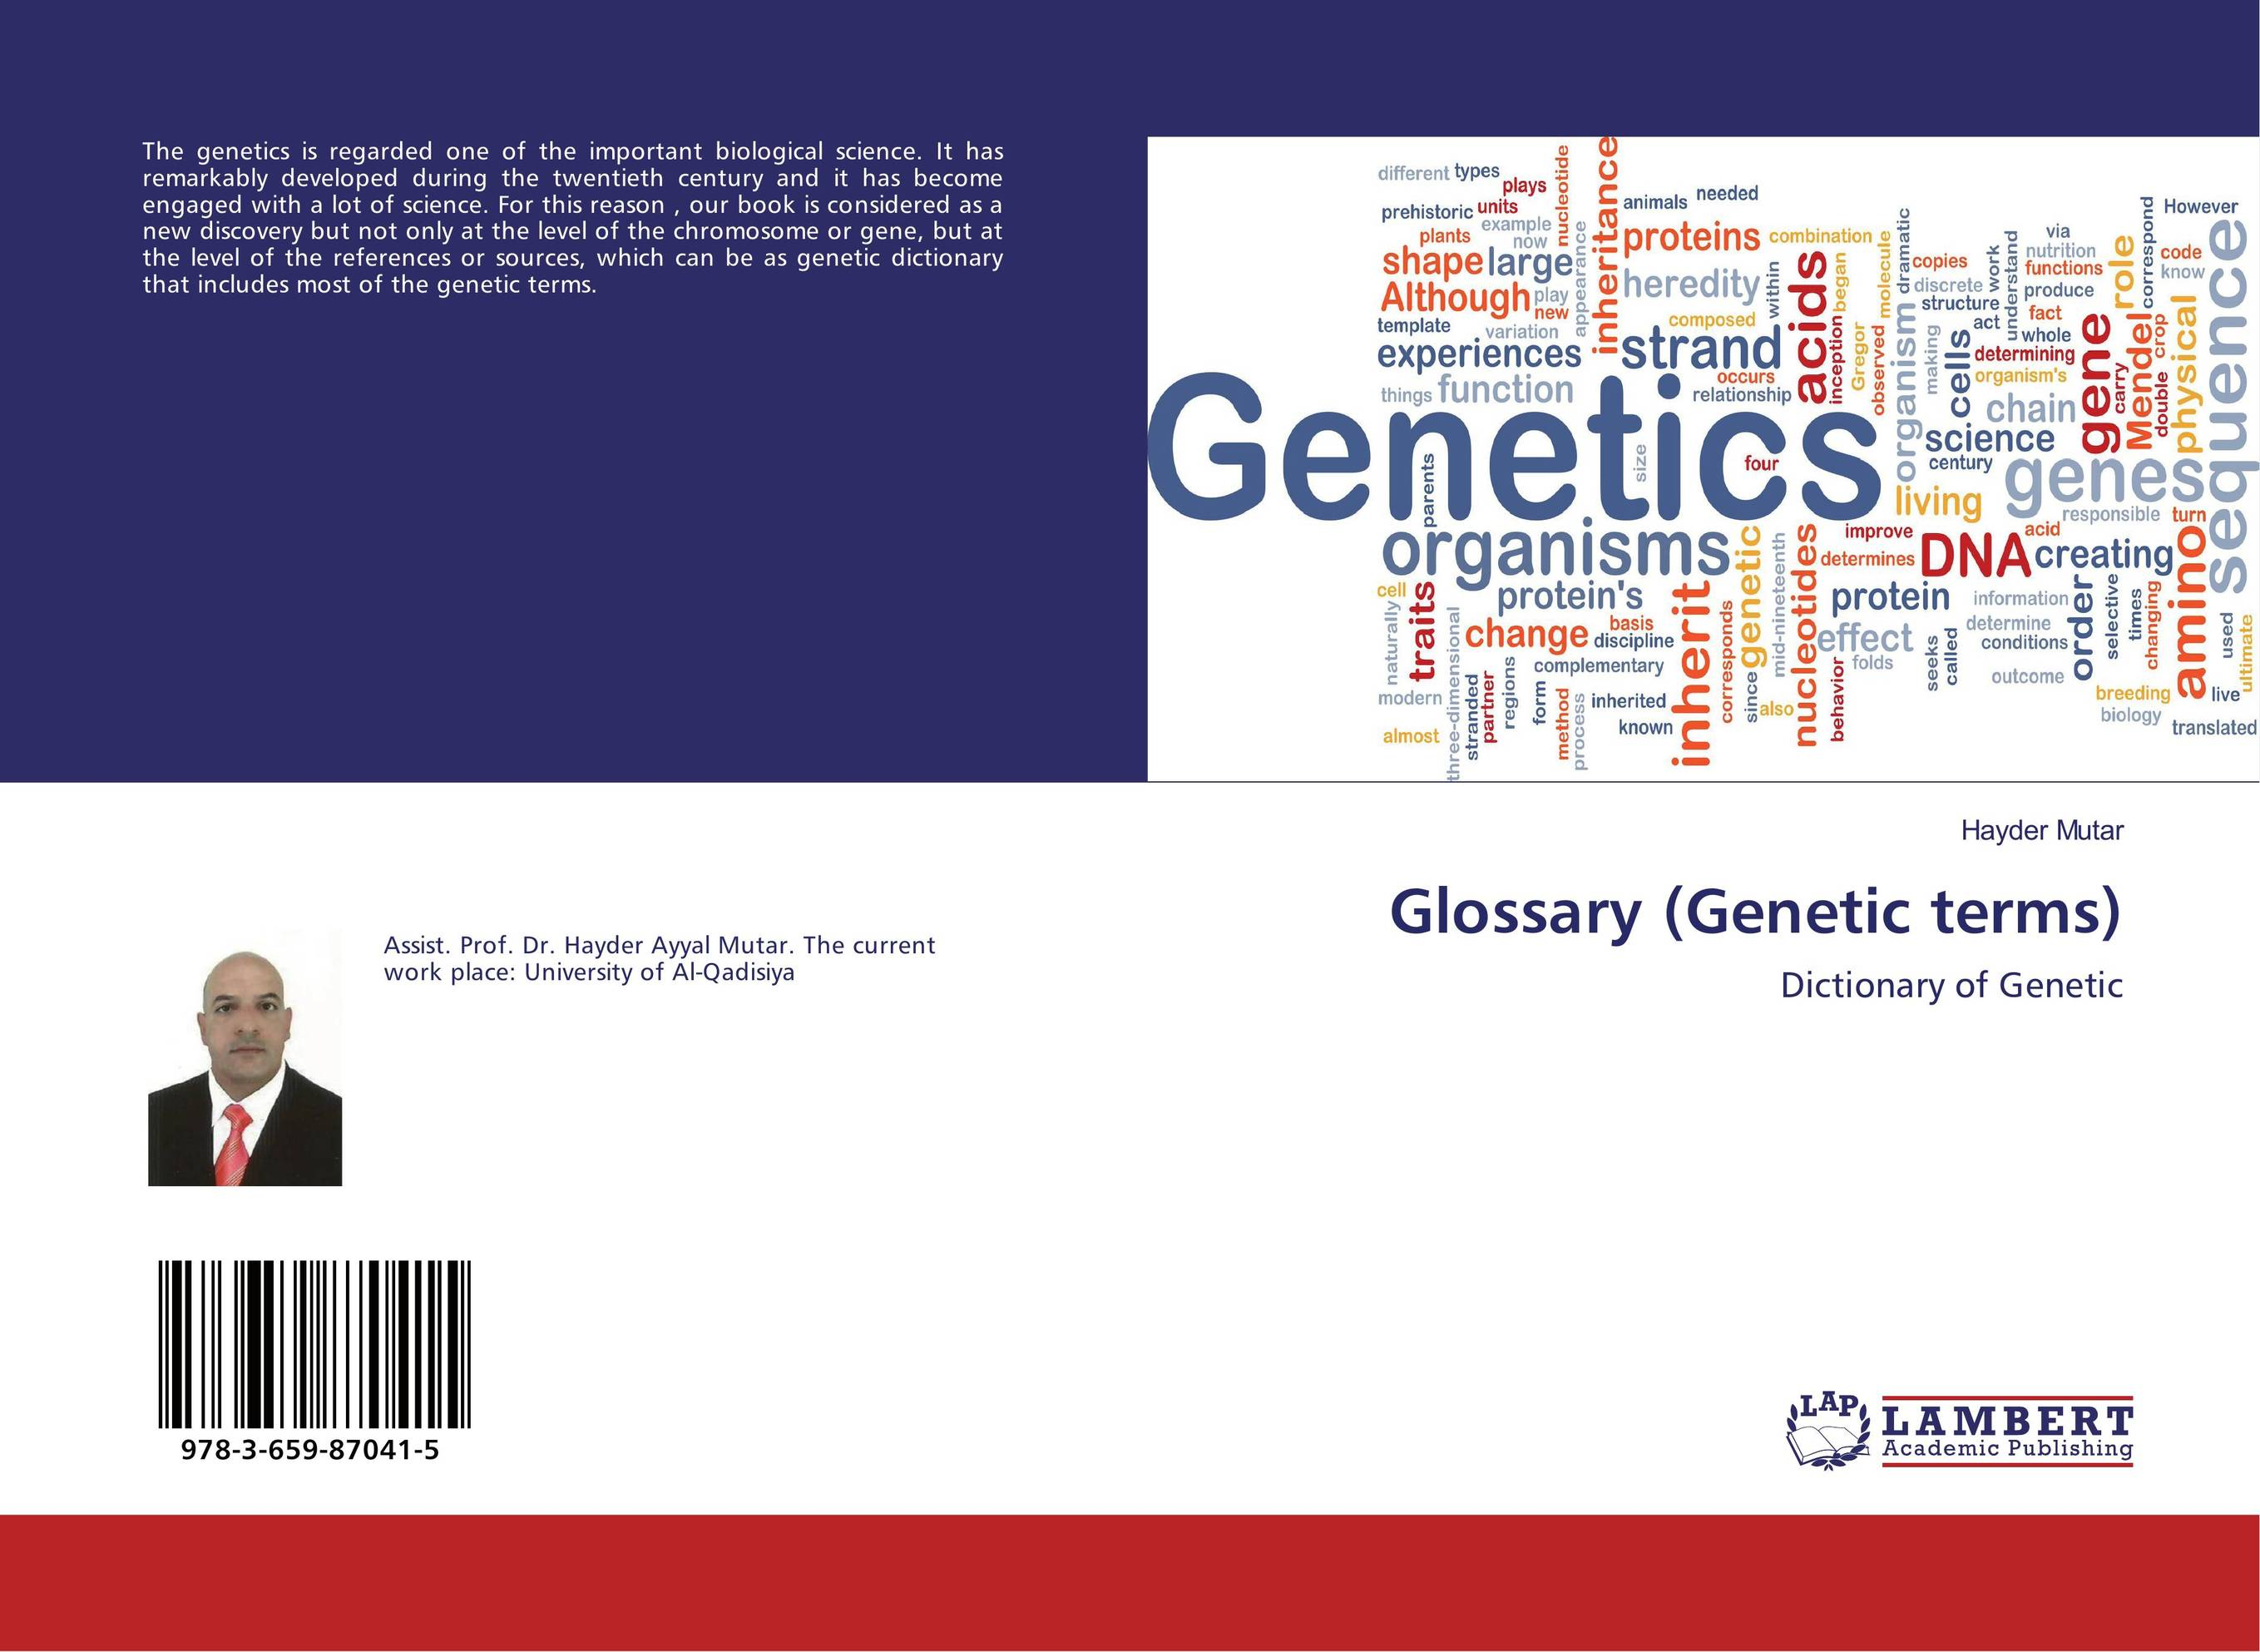 Glossary (Genetic terms)